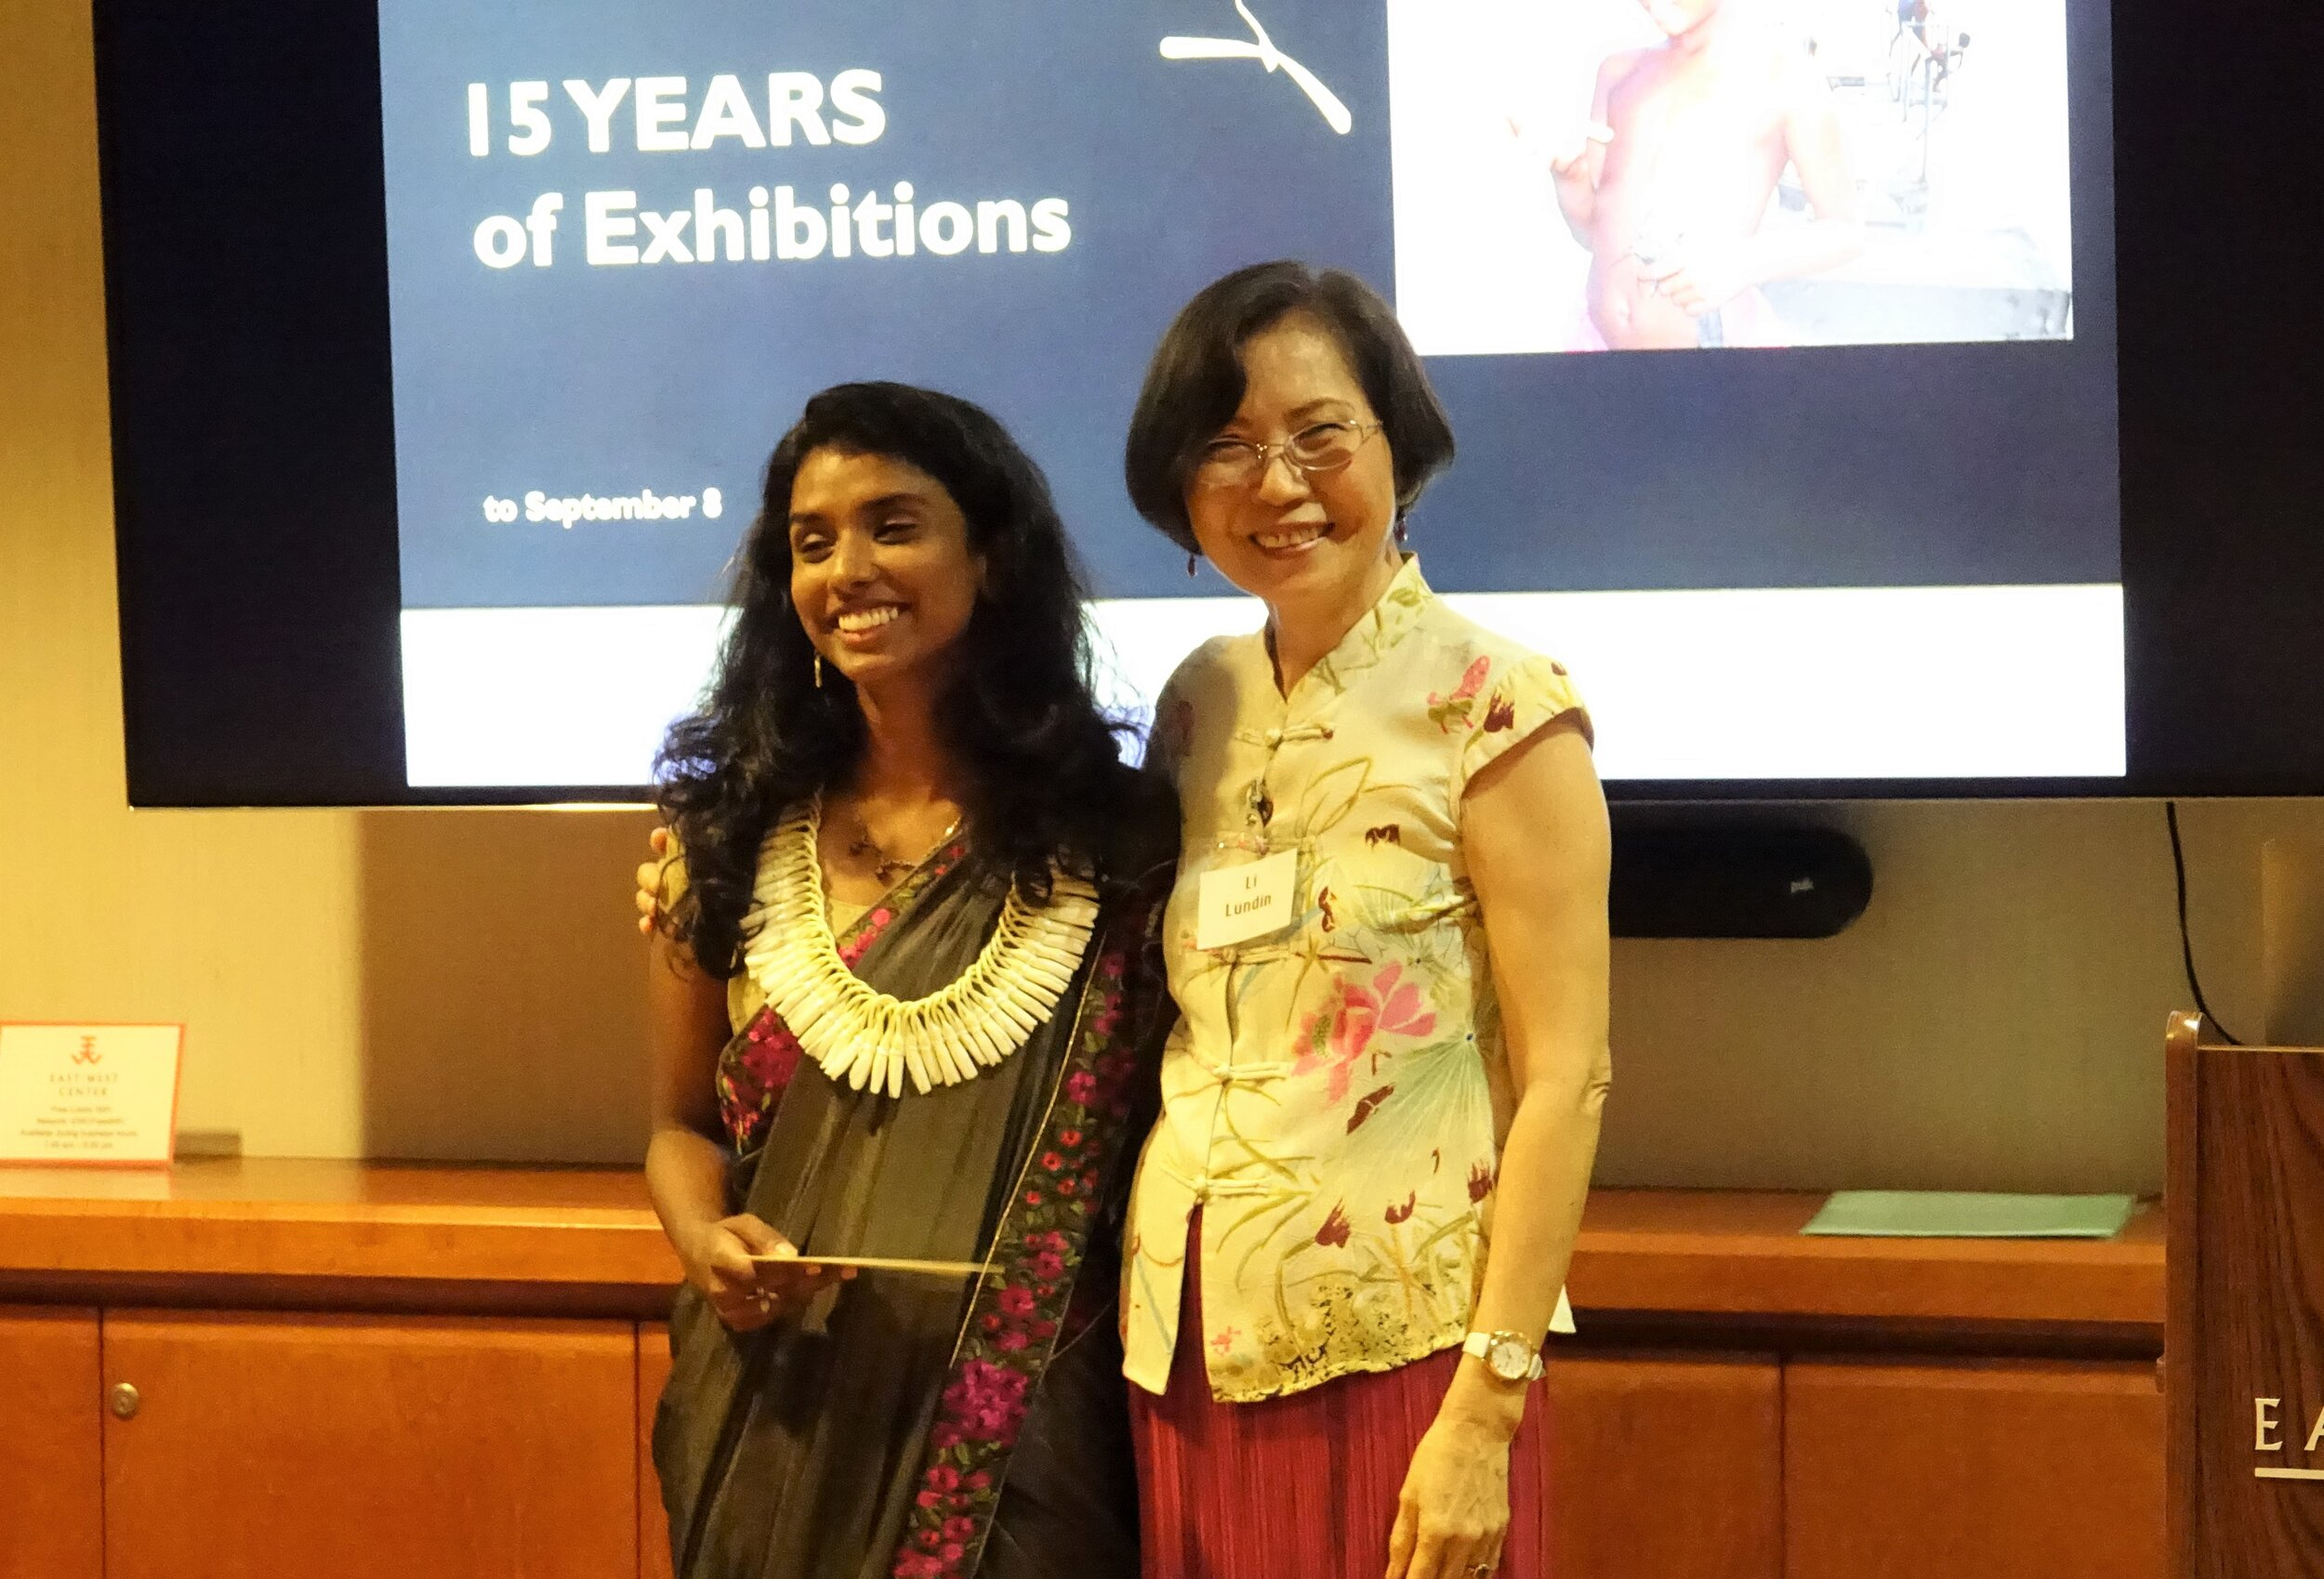 Miss Marina George received the Society's Rhoda E.A. Hackler Scholarship of $1,500 from President Li Lundin for the 2019-2020 academic year.  Marina is from India where she worked as a disability rights advocate and researcher, studying the effects of government education and health policies on Inclusive Education for children with disabilities within five states, across rural and urban settings. At UH Manoa she is pursuing a Master's degree in art history in South Asia. Prior to coming to Hawaii, she did a Graduate Internship at The Metropolitan Museum of Art in New York City.